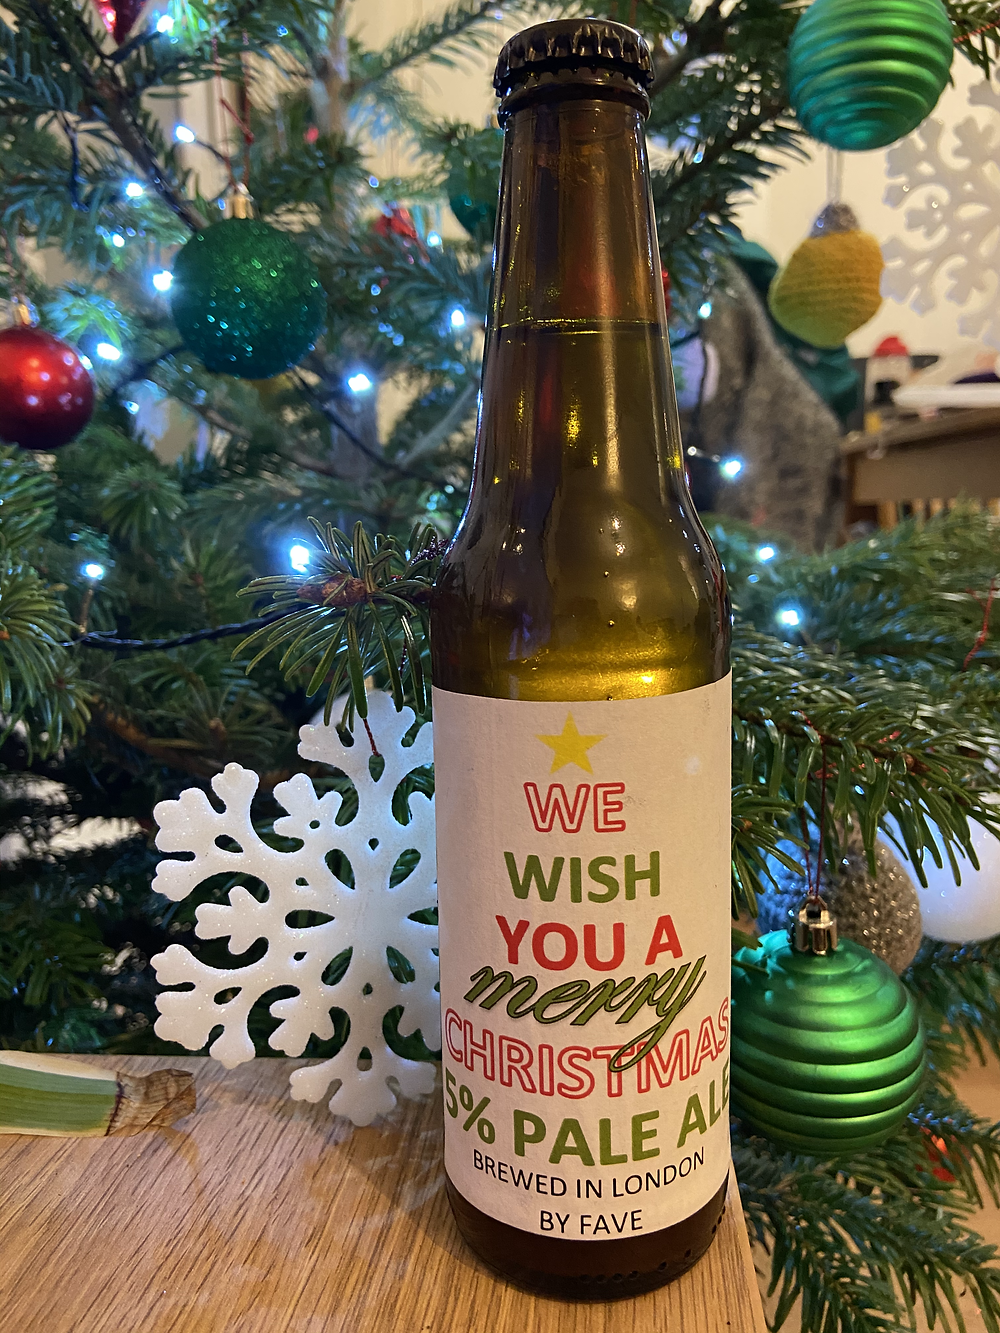 We wish you a Merry Christmas 5% pale ale bottle next to the Christmas tree